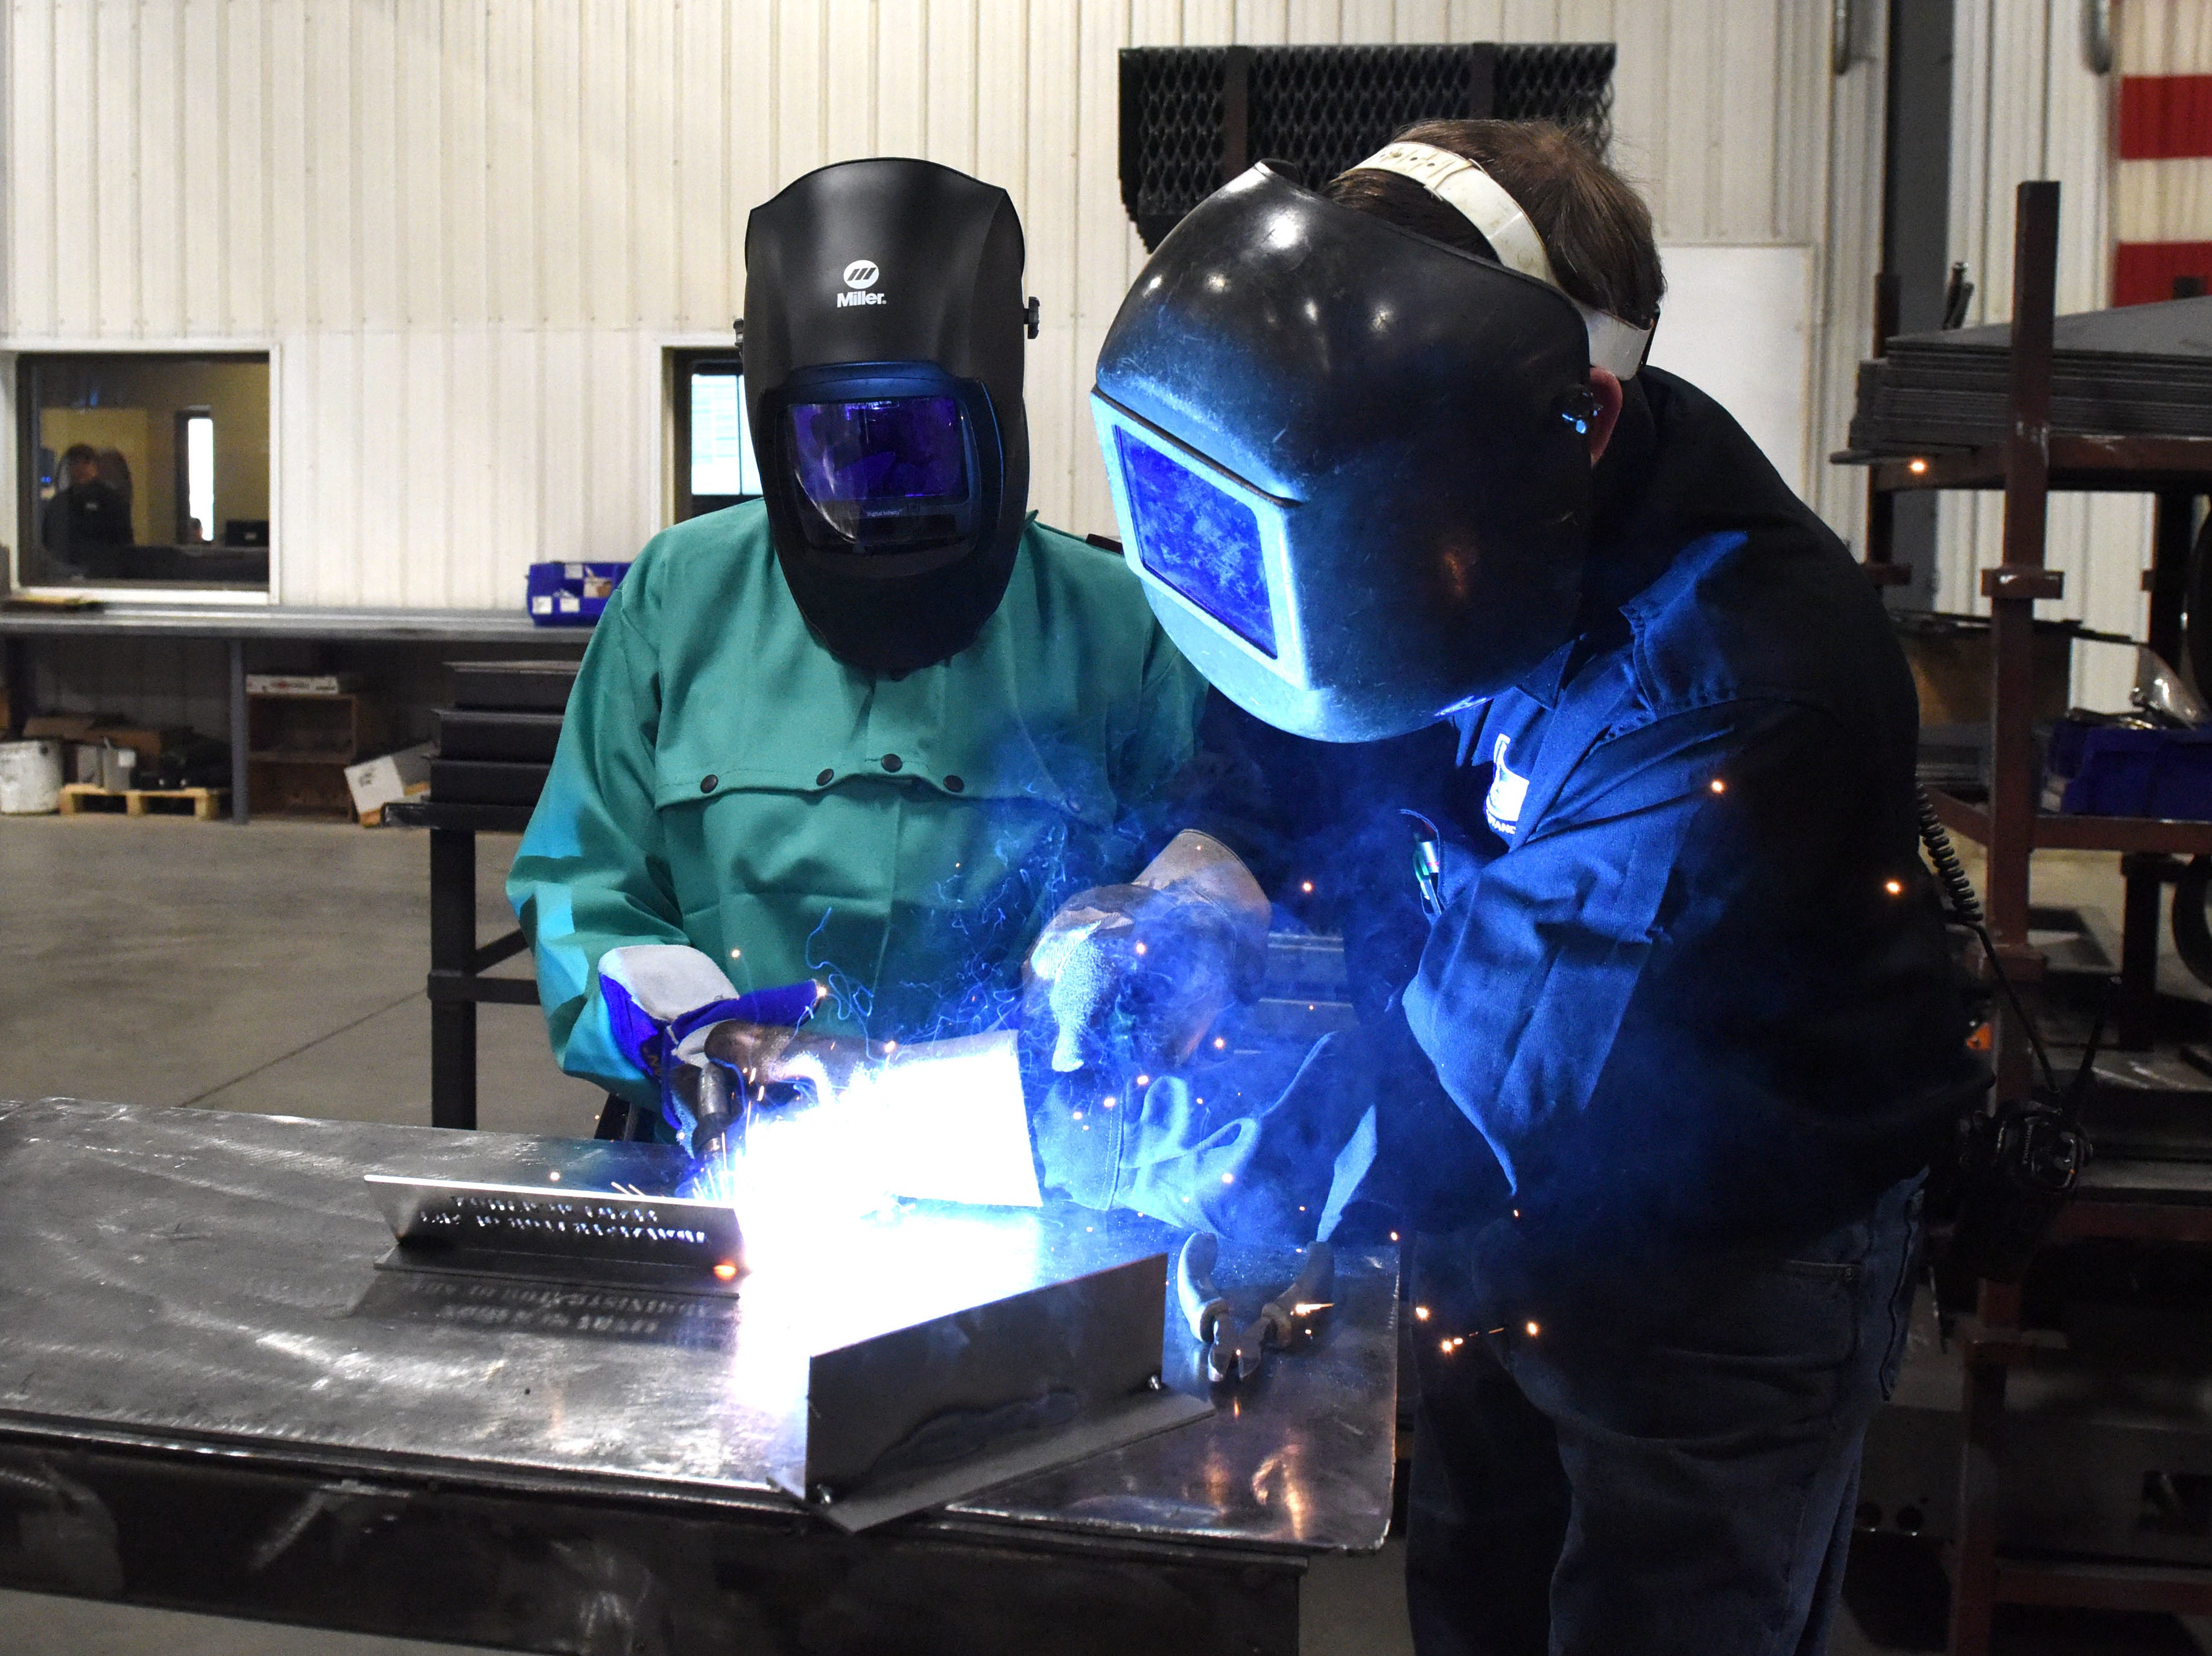 Dennis Roozenboom, welding supervisor, and Linda McMahon, head of the U.S. Small Business Administration, weld at DeGeest Steel Works in Tea, S.D., Thursday, Nov. 29, 2018.